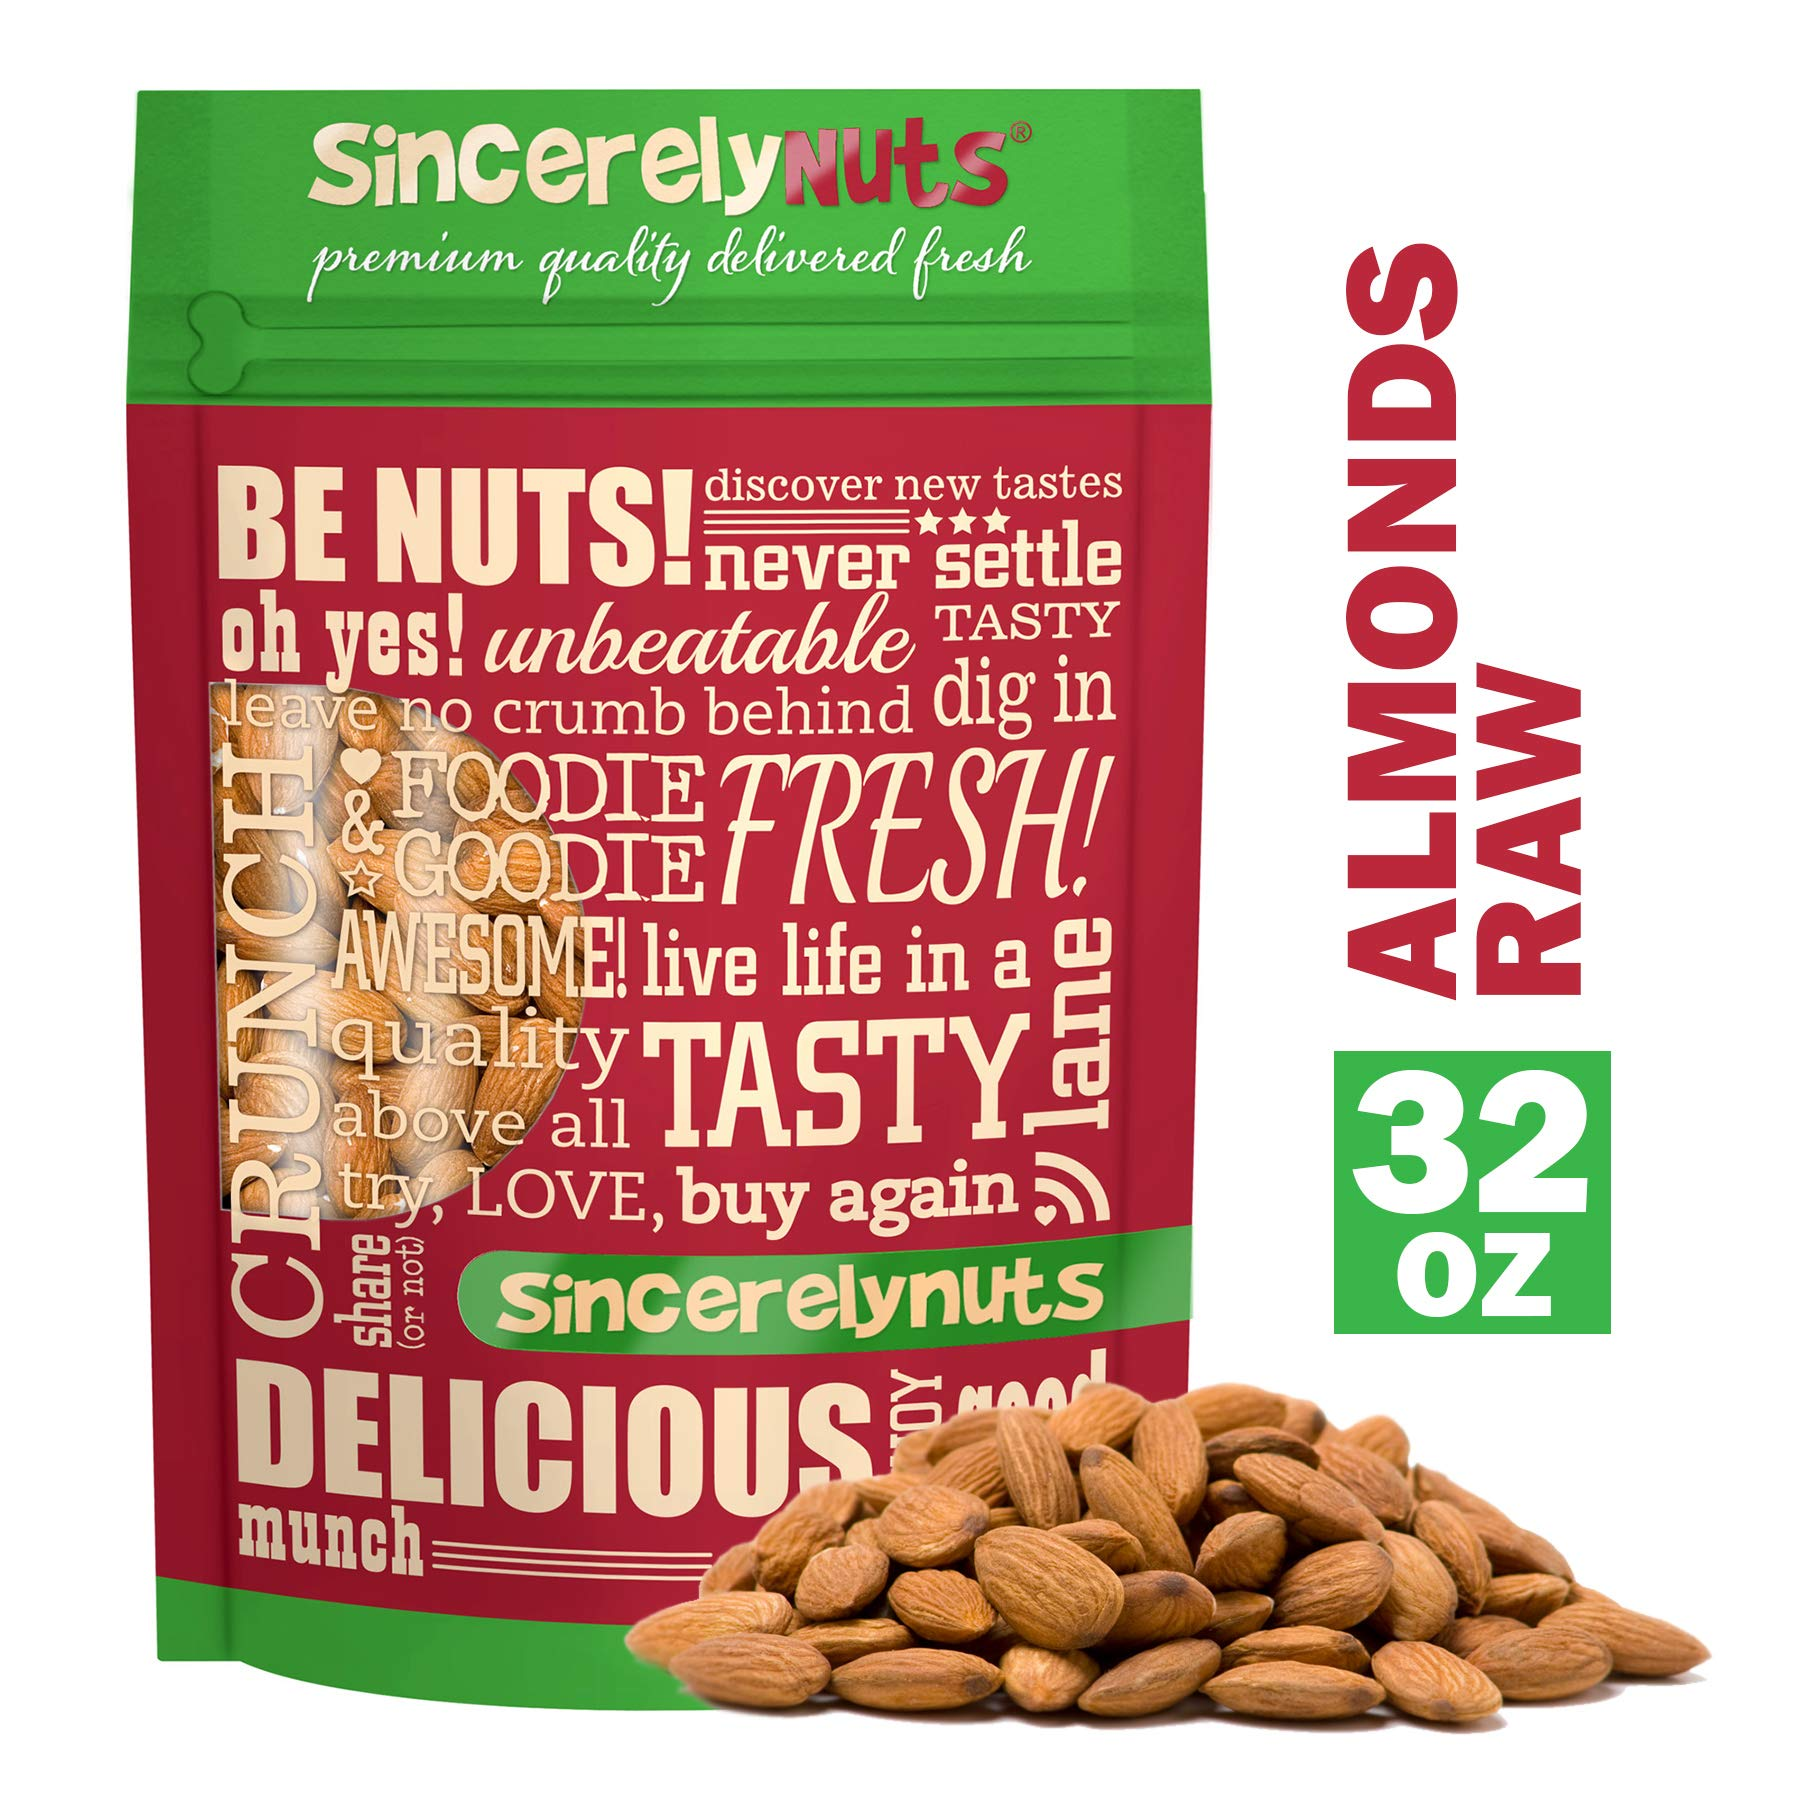 Sincerely Nuts - Natural Whole Raw Almonds Unsalted No Shell | 2 Lb. Bag | Low Calorie, Low Sodium, Kosher, Vegan, Gluten Free | Gourmet Kosher Snack Food | Source of Fiber, Protein, Nutrients